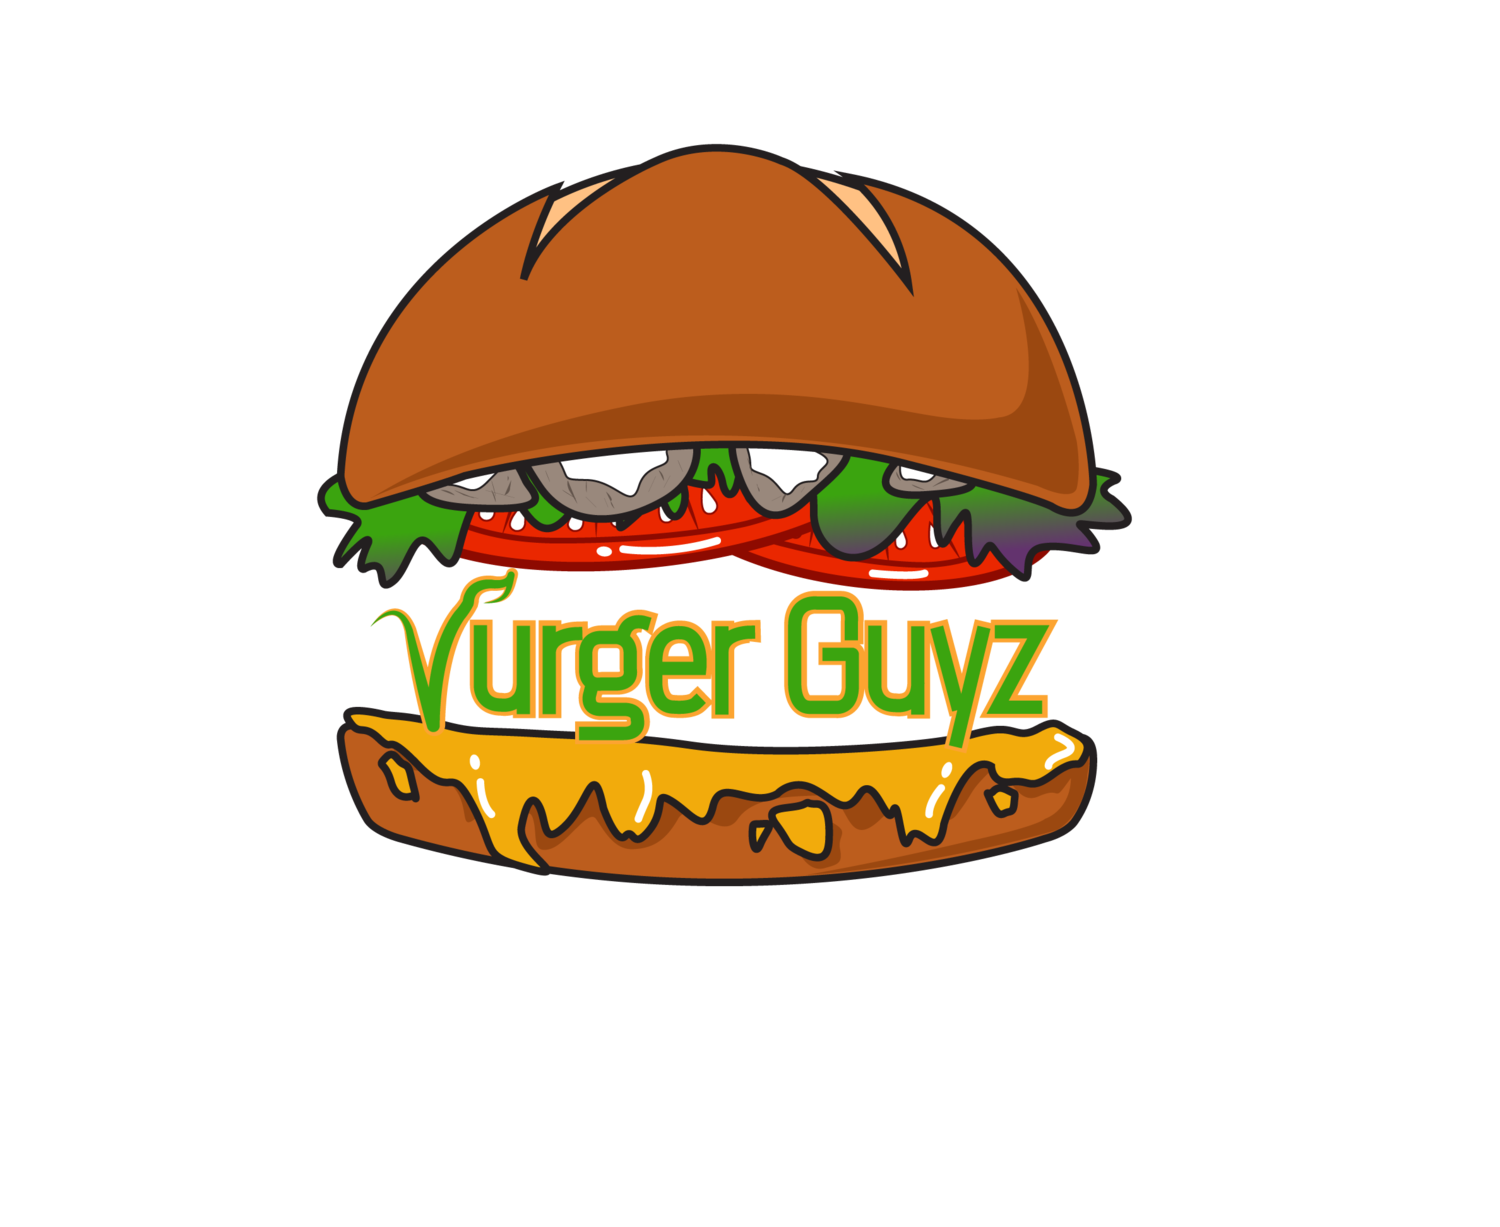 Vurger Guyz | Home Of The Best Burgers!